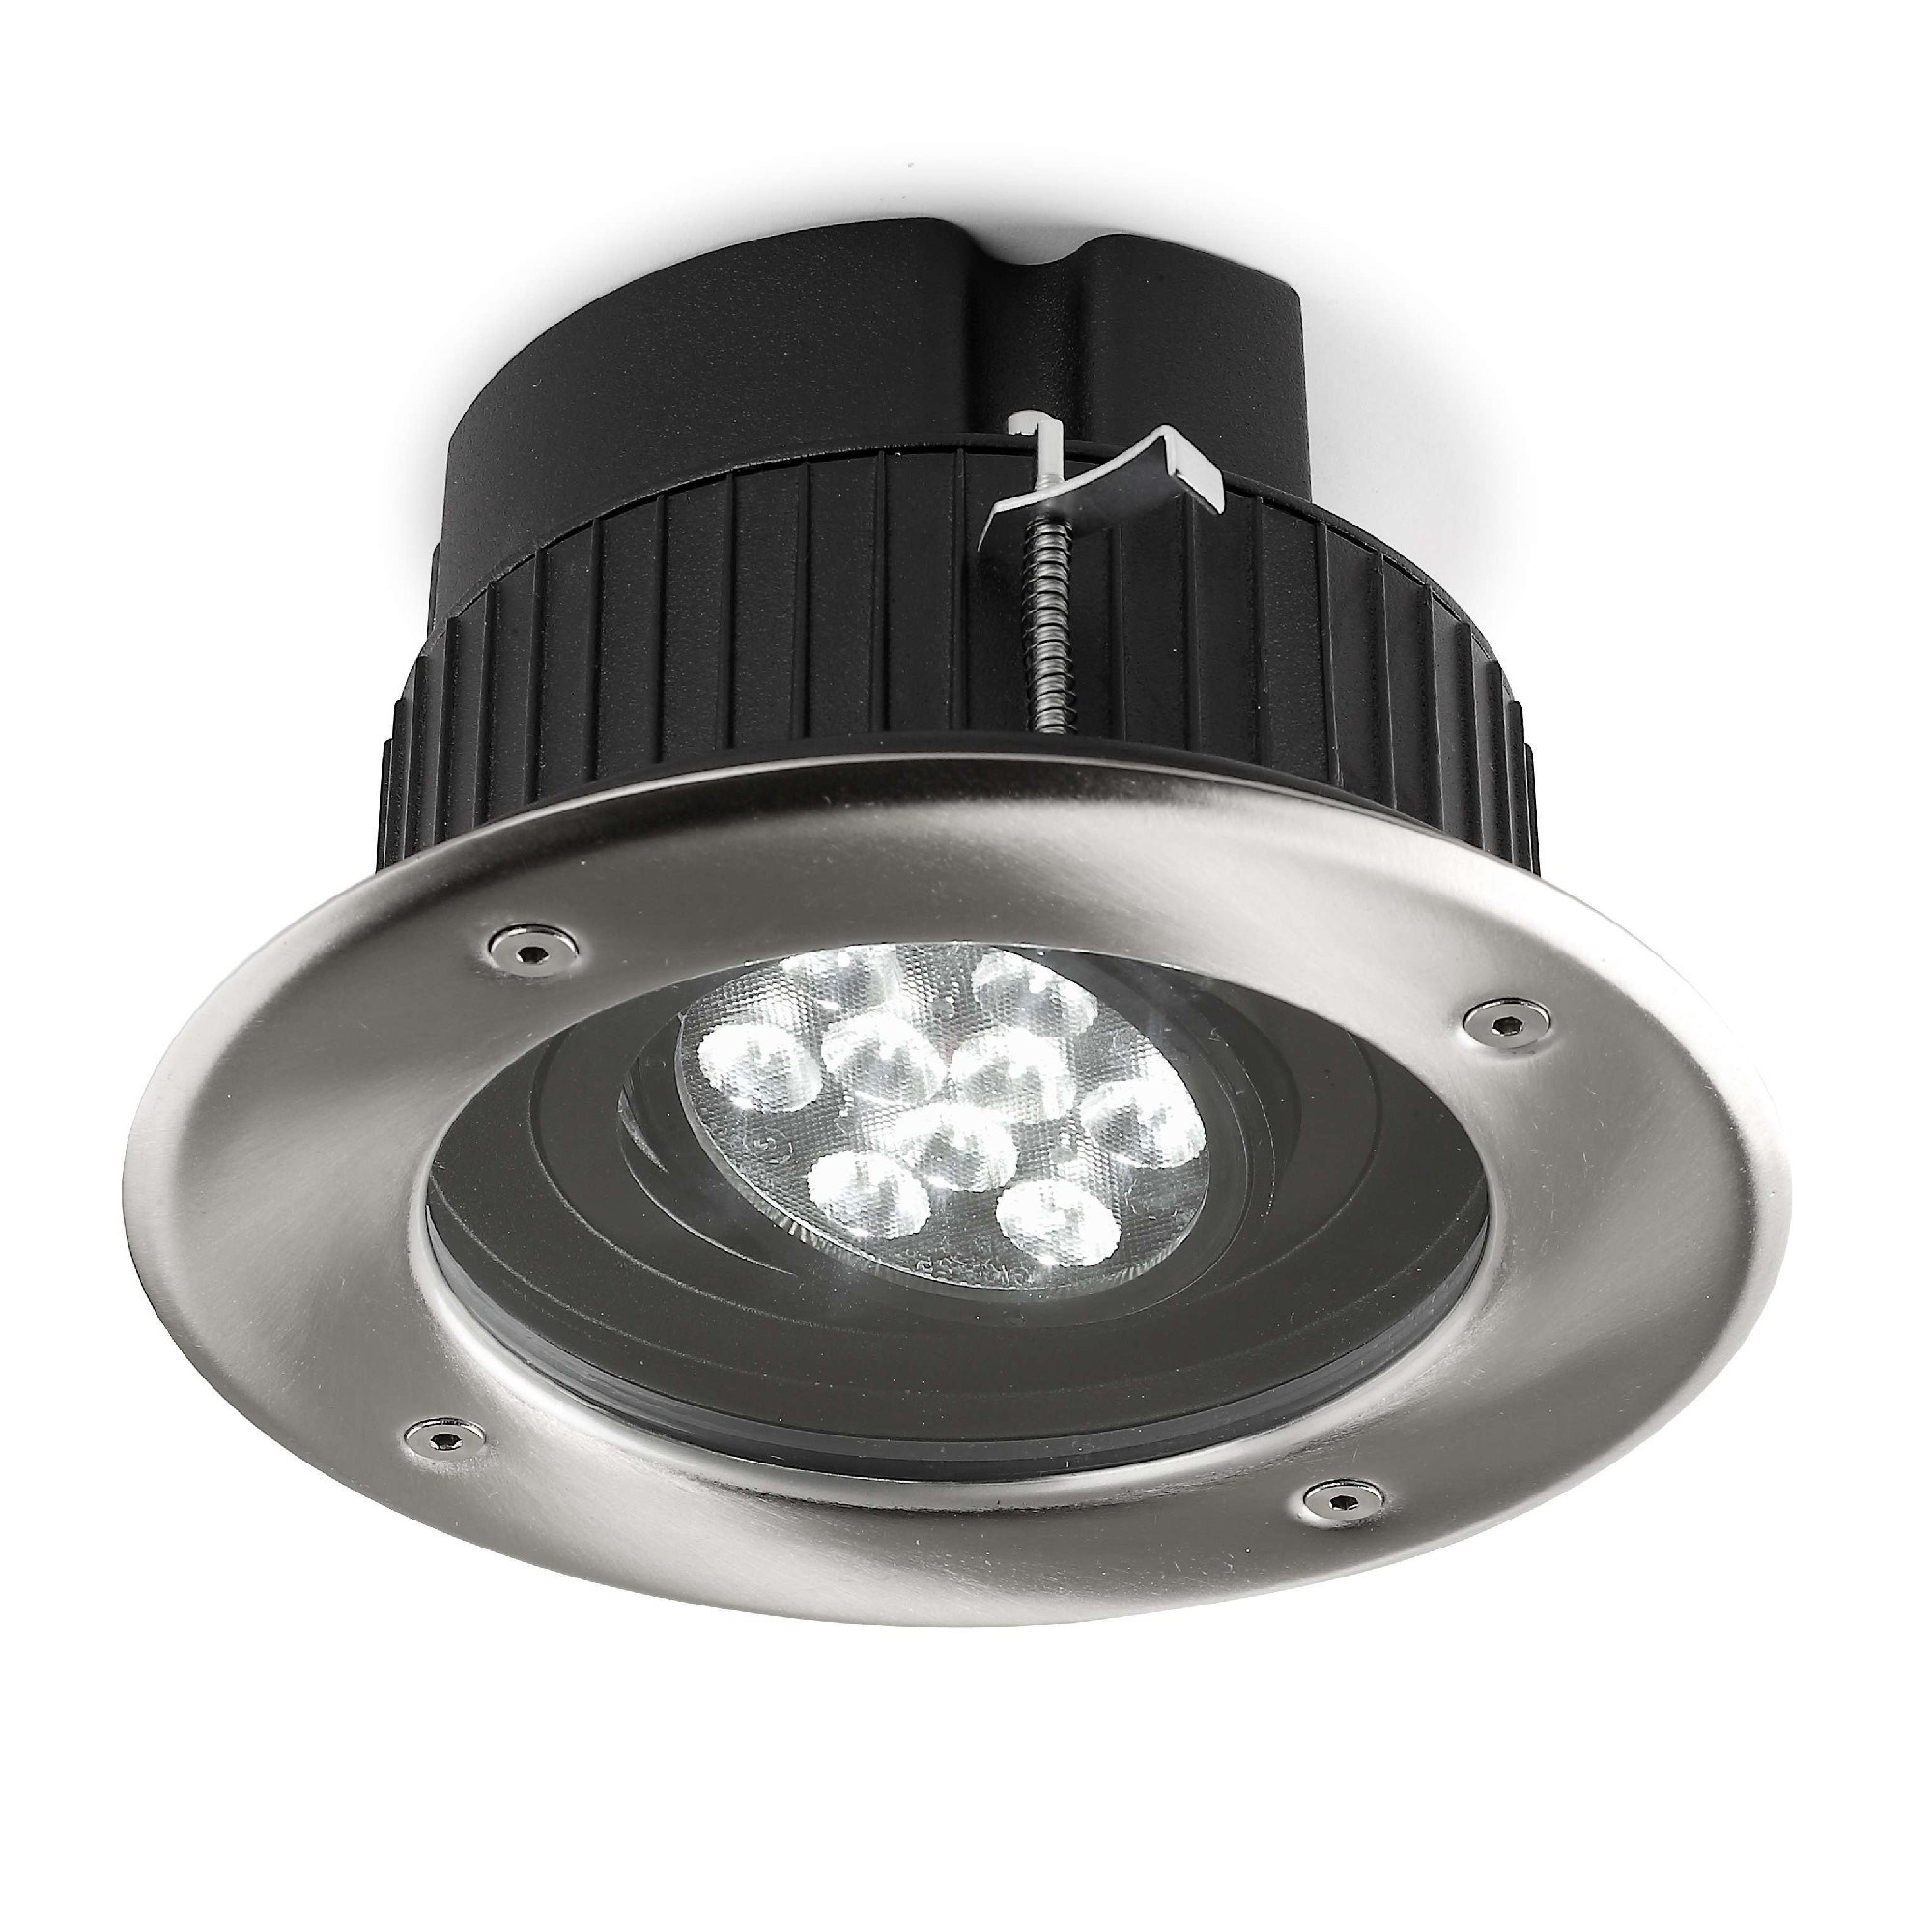 Leds C4 OUTDOOR 15 9948 CA CM LED lampen